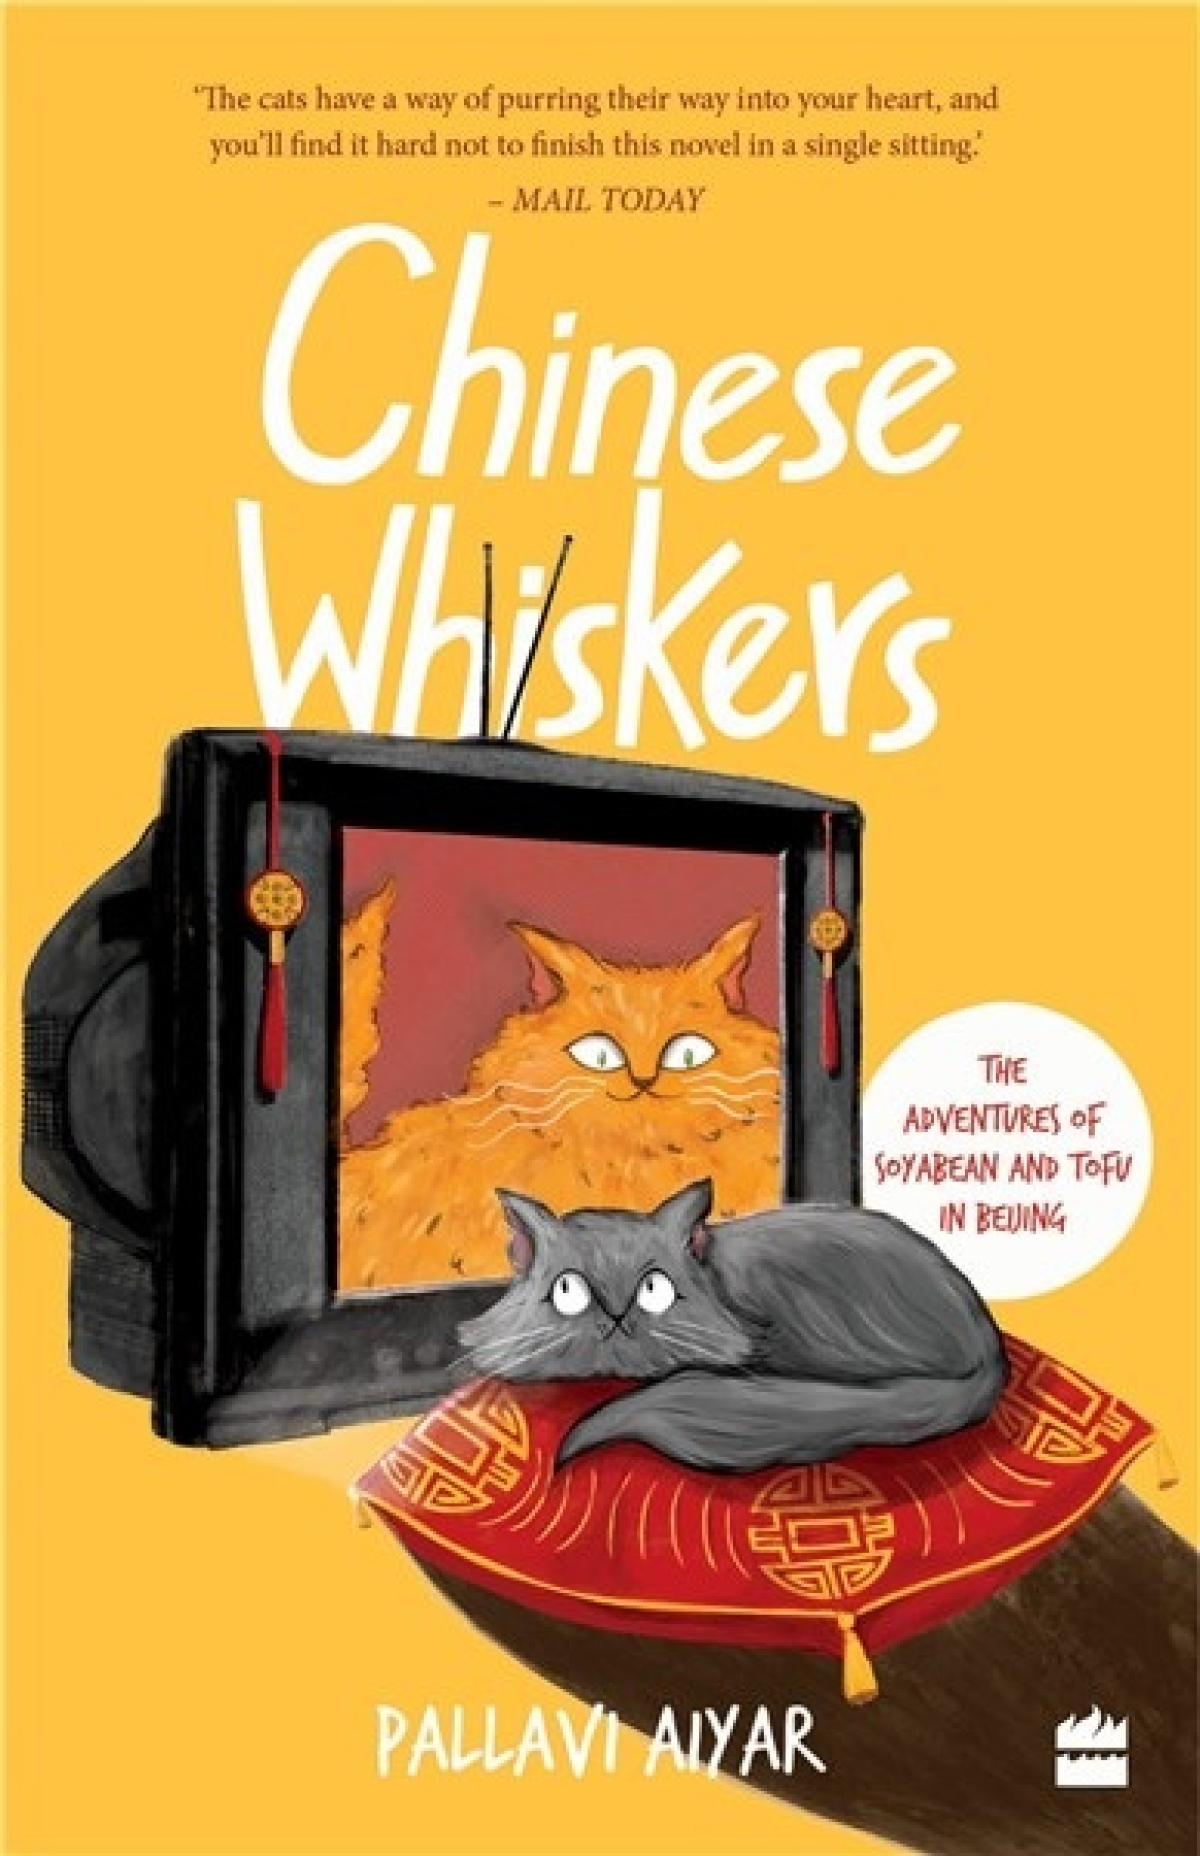 Jakarta Tails & Chinese Whiskers review: Interpreting the world through a feline's point of view